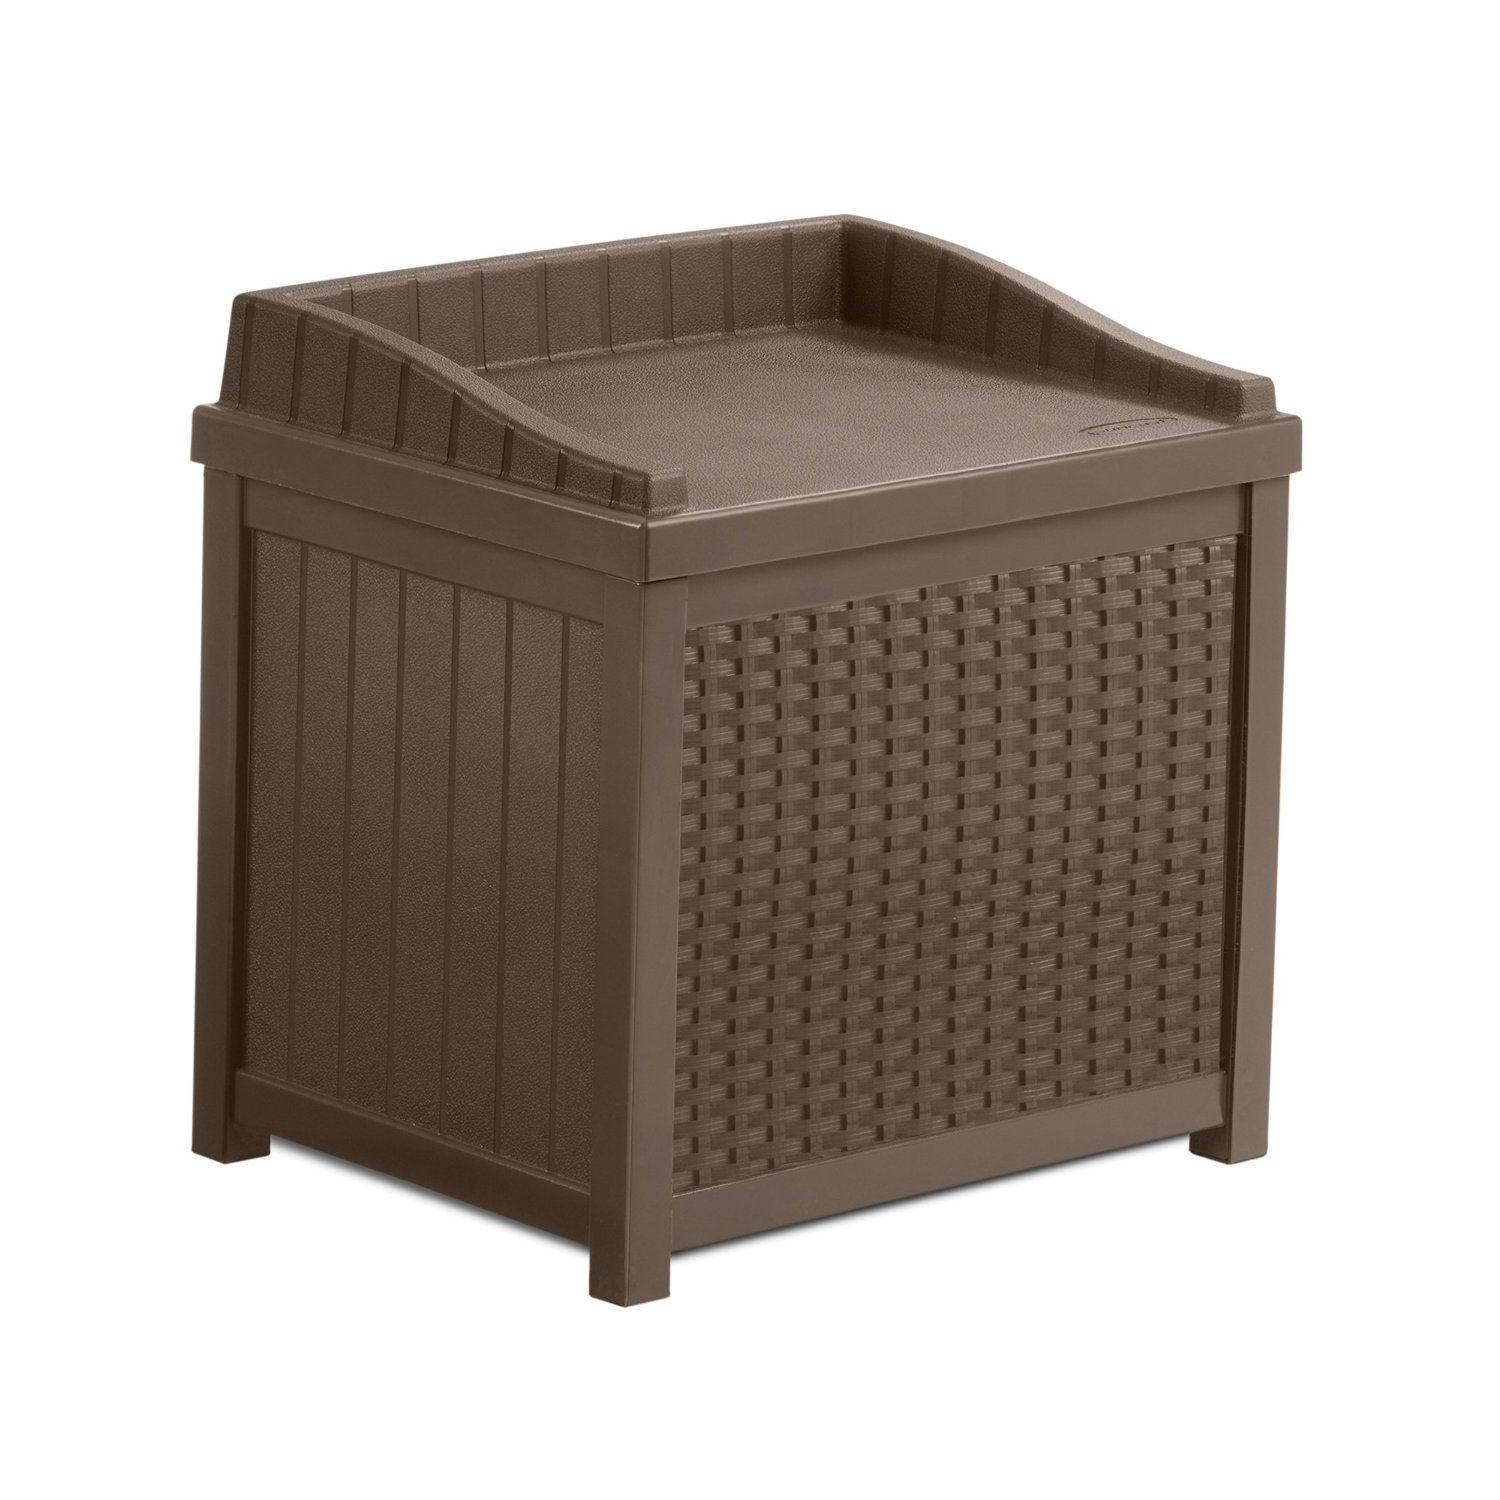 Suncast Mocha Resin Wicker 22-Gallon Stay Dry Storage Seat – Matching Trash Hideaway Also Available